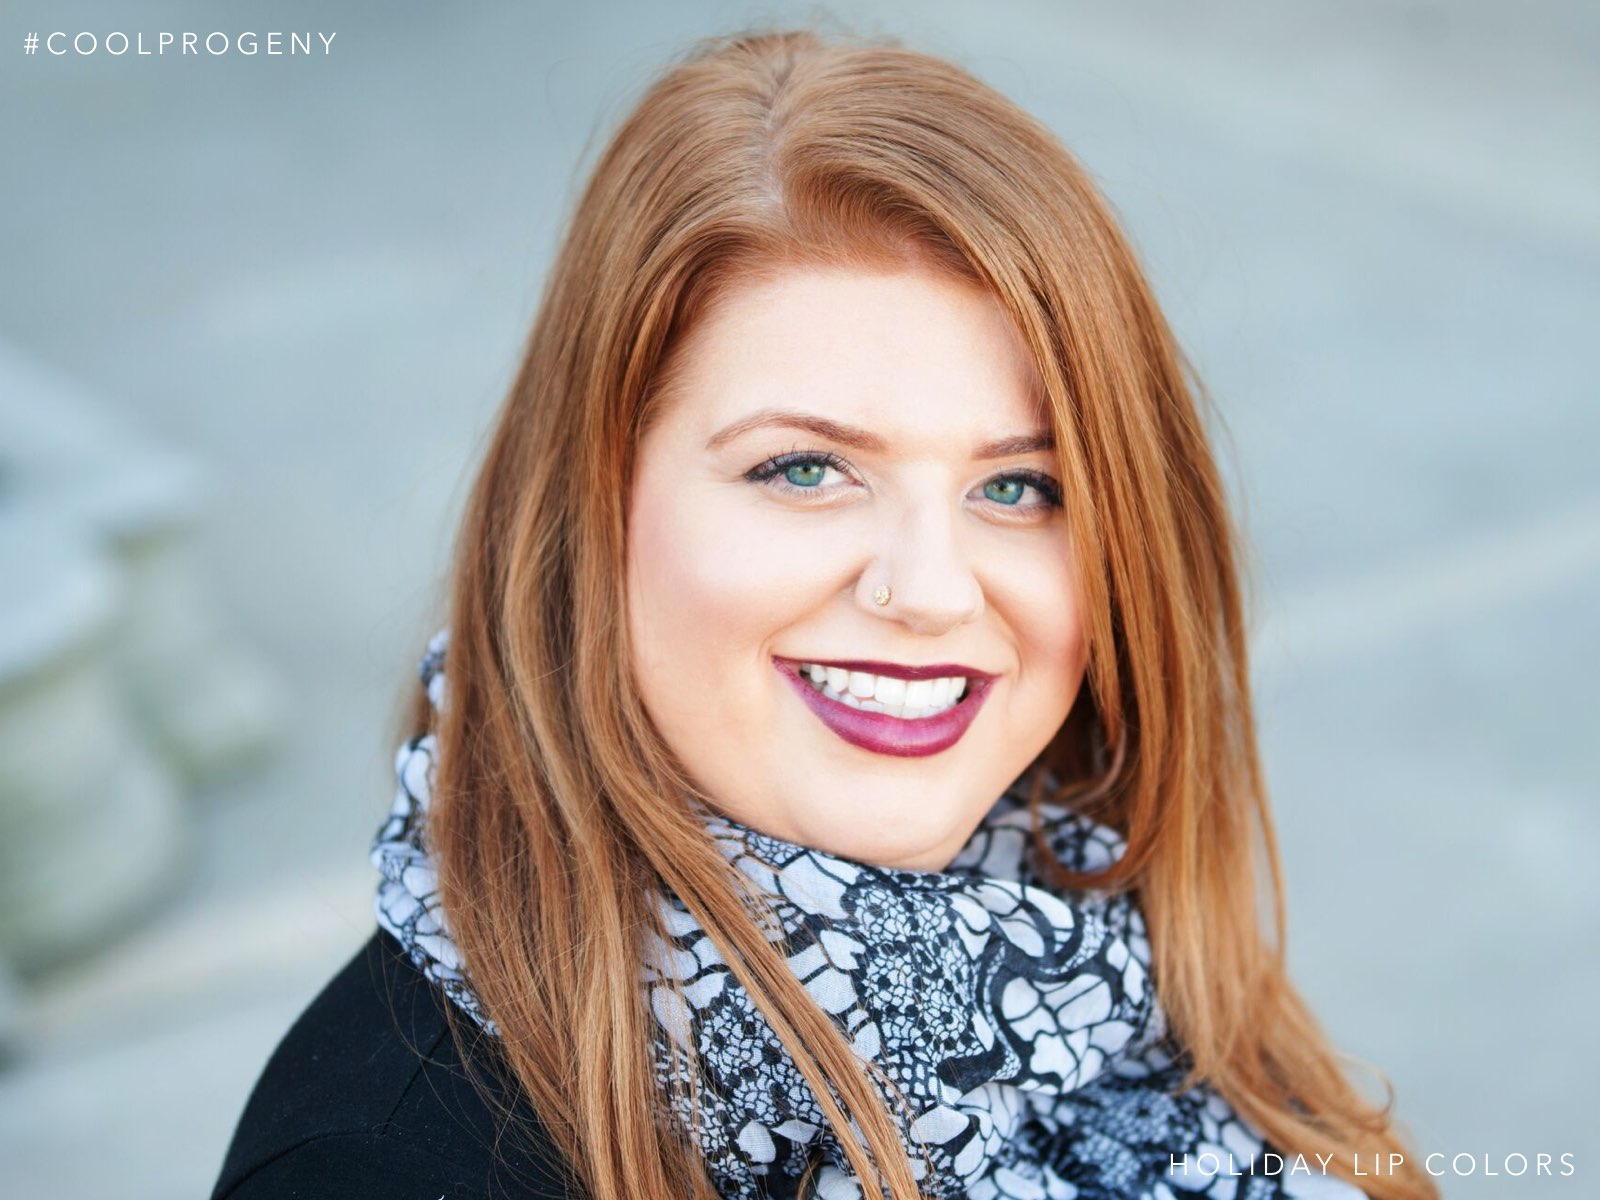 Holiday Lip Colors - (cool) progeny